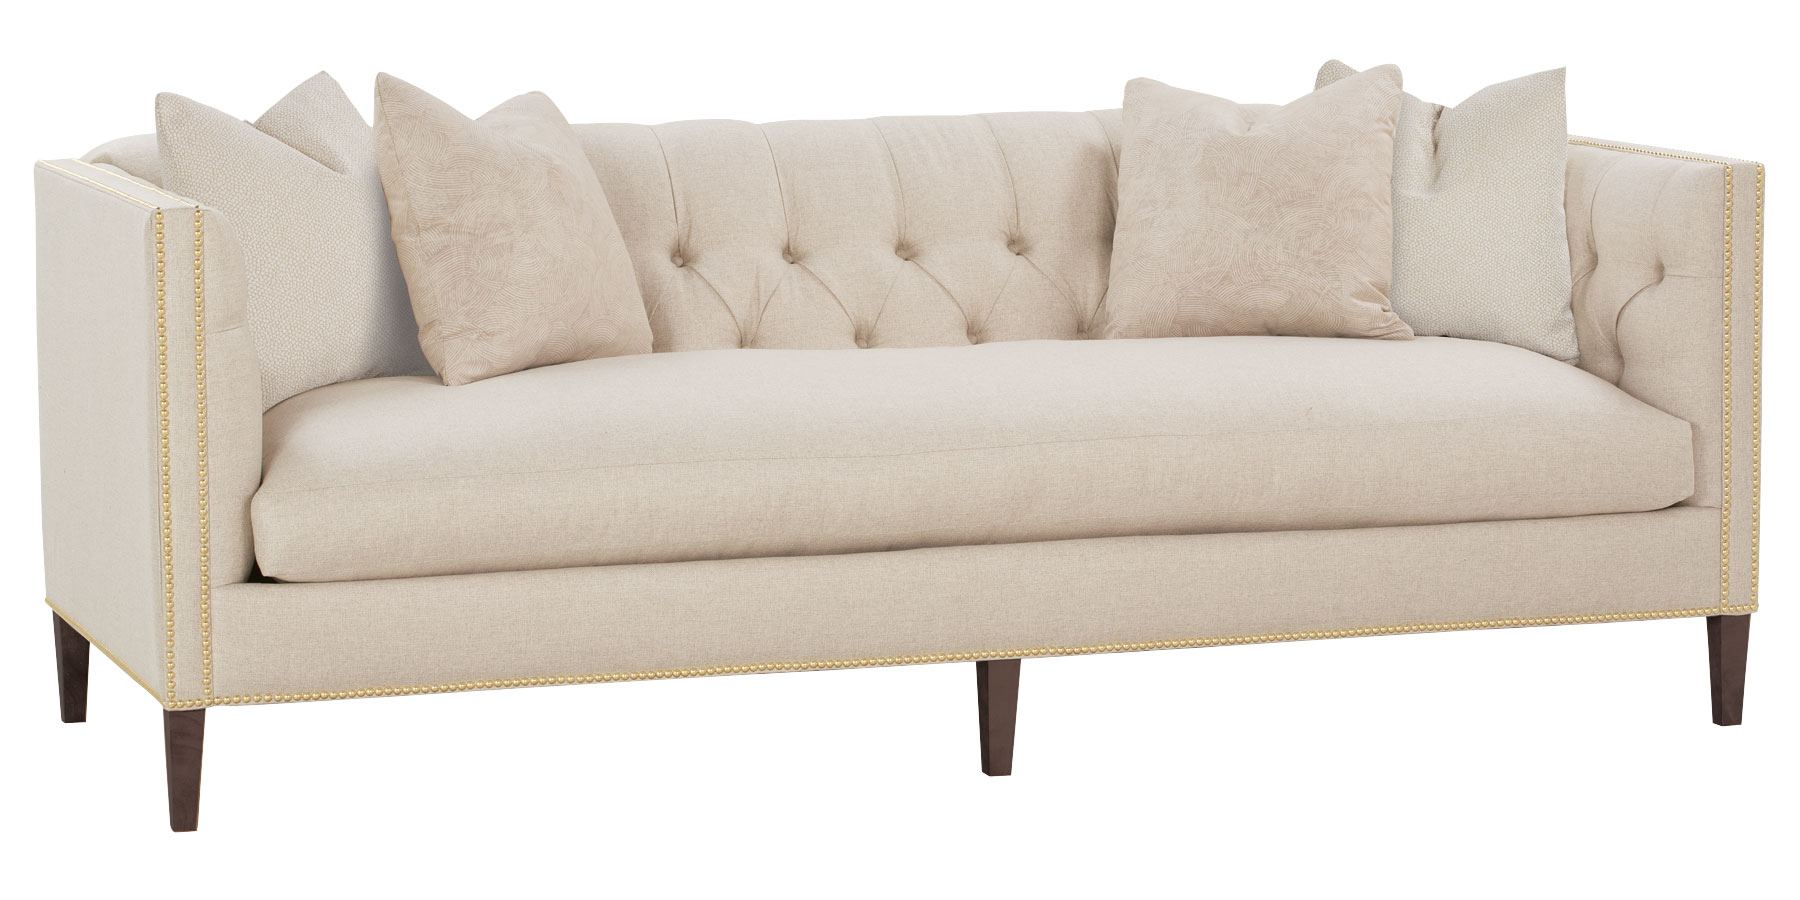 Upholstered Tight Back Single Seat Sofa Collection